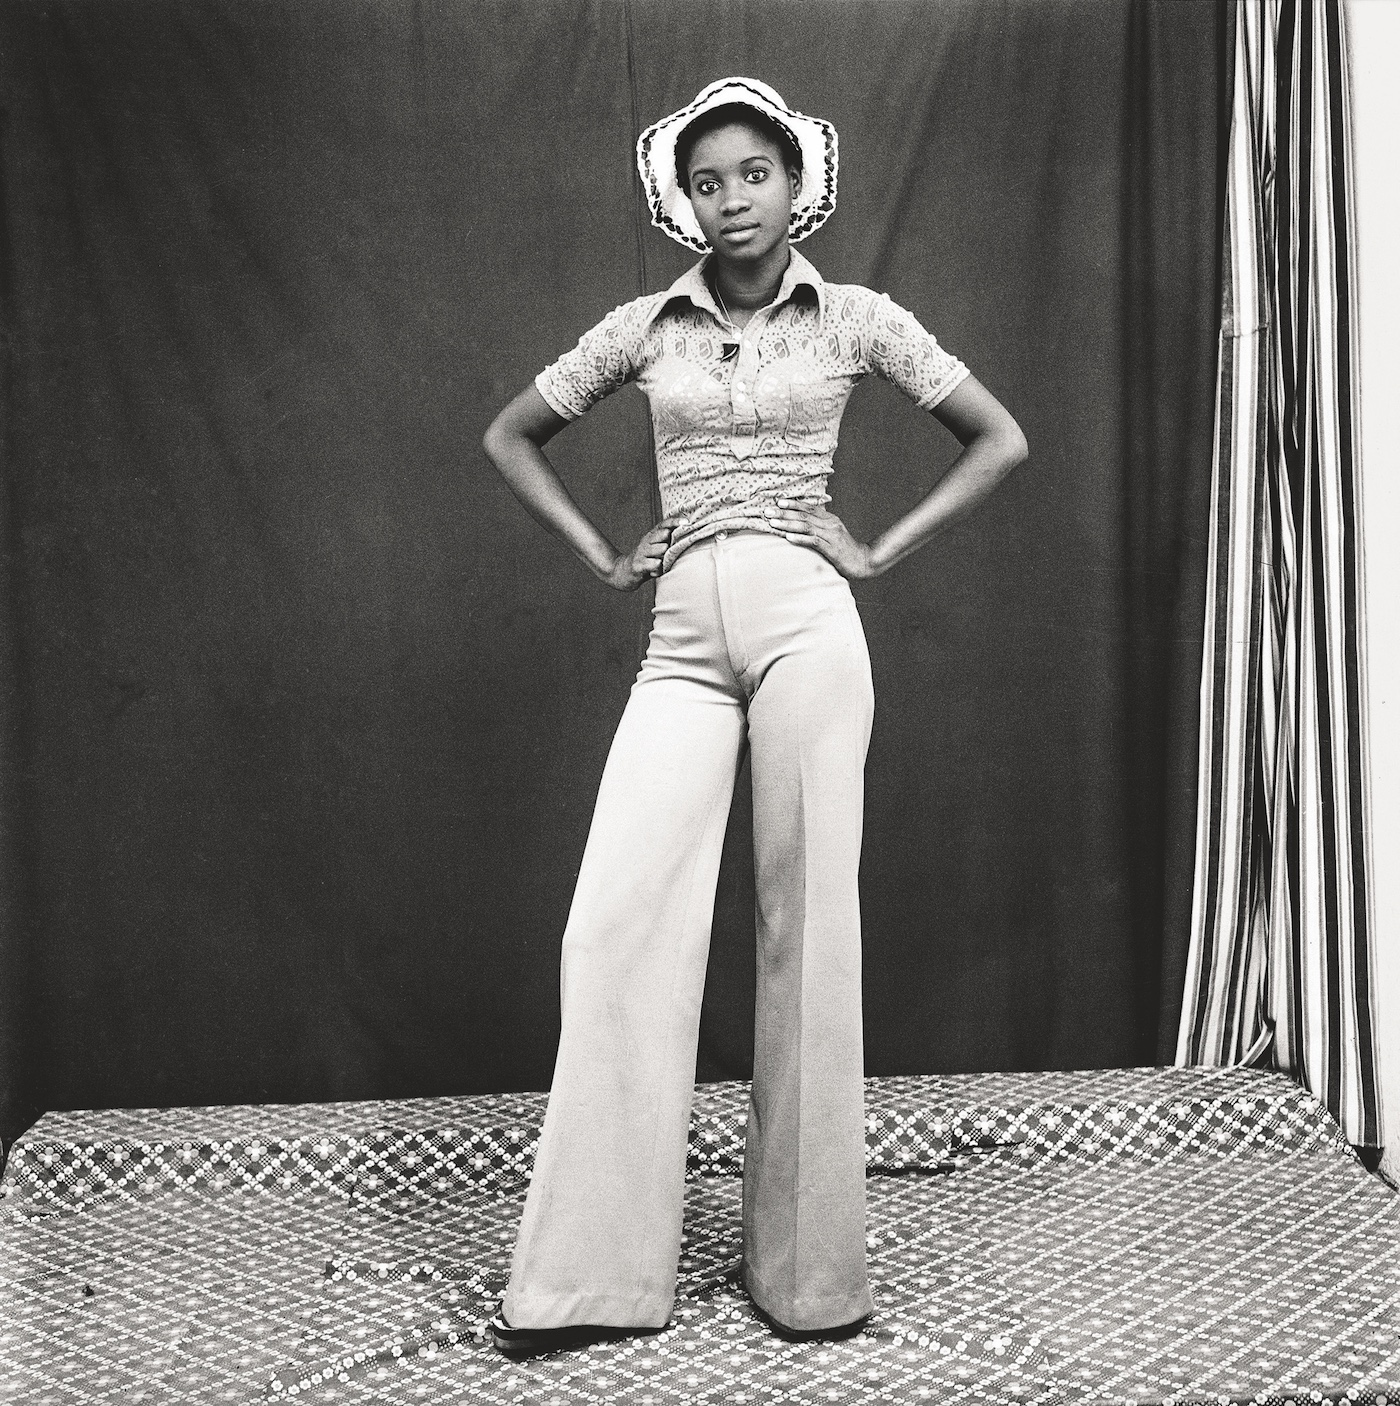 Mon chapeau et pattes d'éléphant, 1974. Collection Fondation Cartier pour l'art contemporain, Paris © Malick Sidibé Extract from Mali Twist (Éditions Xavier Barral, Fondation Cartier pour l'art contemporain, 2017)